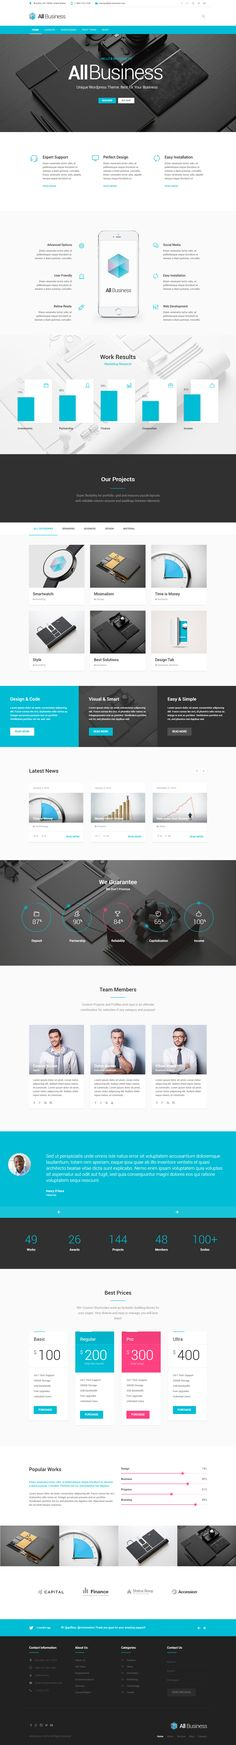 Eventica - Event Calendar & Ecommerce WordPress Theme | Event ...